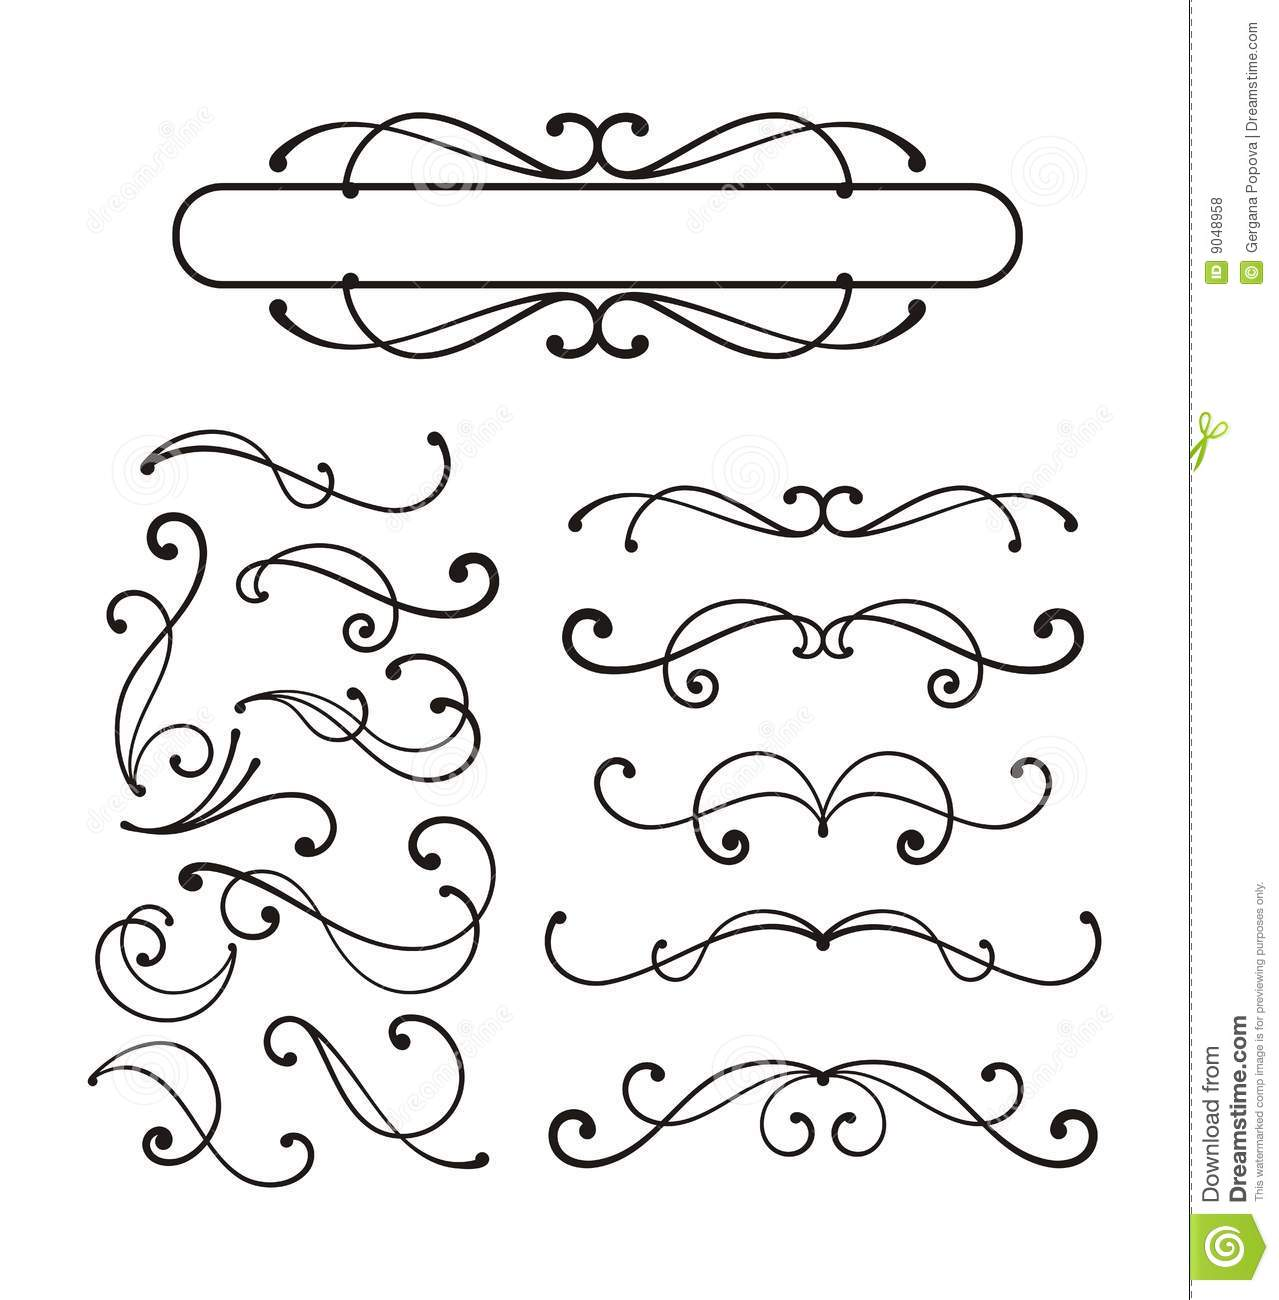 Decorative scroll ornaments stock vector illustration of for Decorative scrollwork